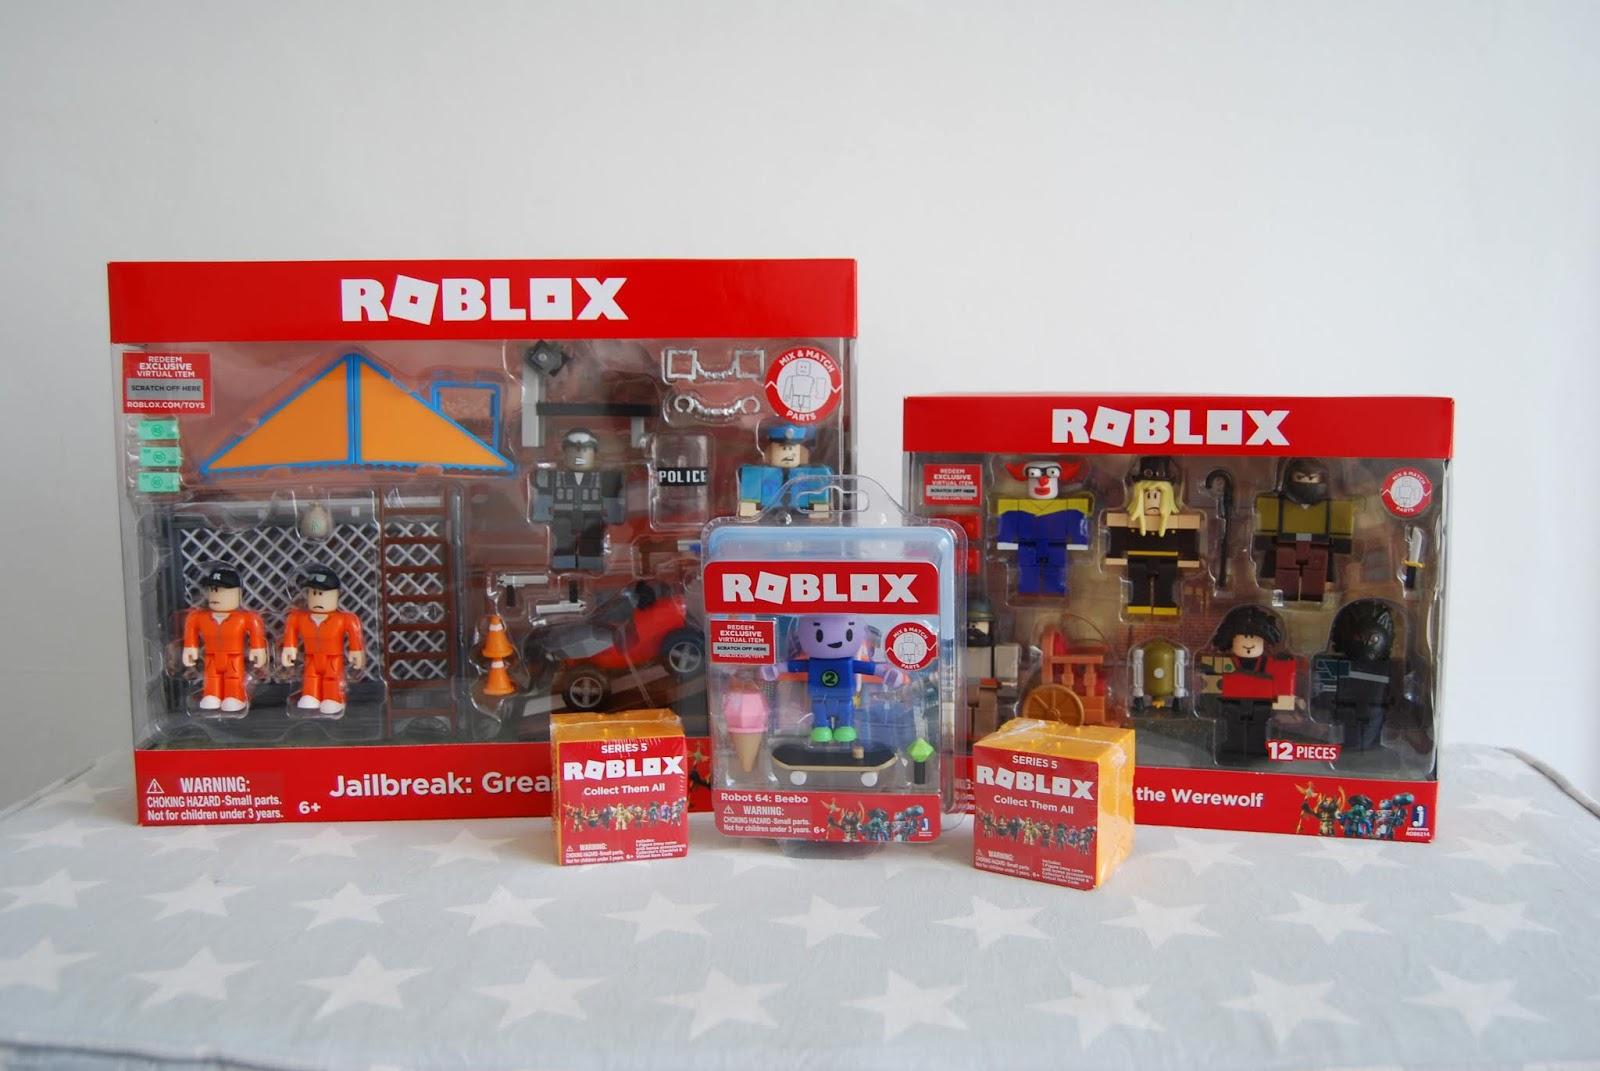 Chic Geek Diary Roblox Series 5 Toys Review Giveaway